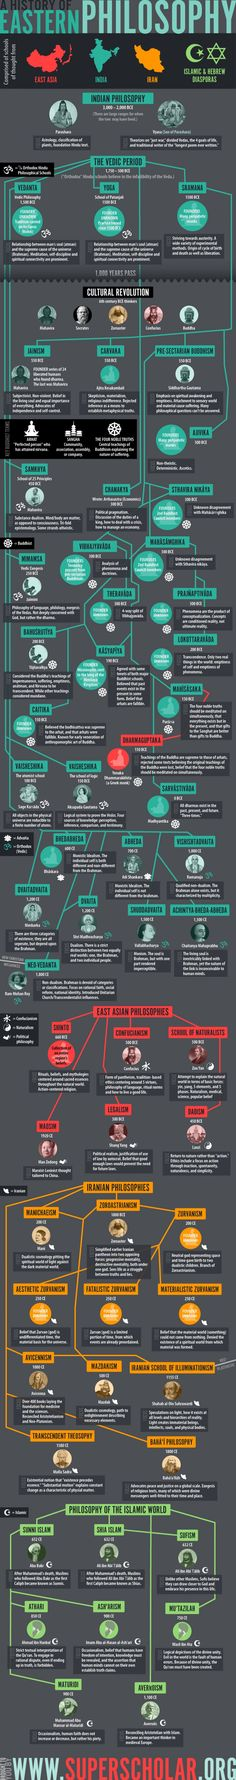 History of Eastern Philosophy Infographic